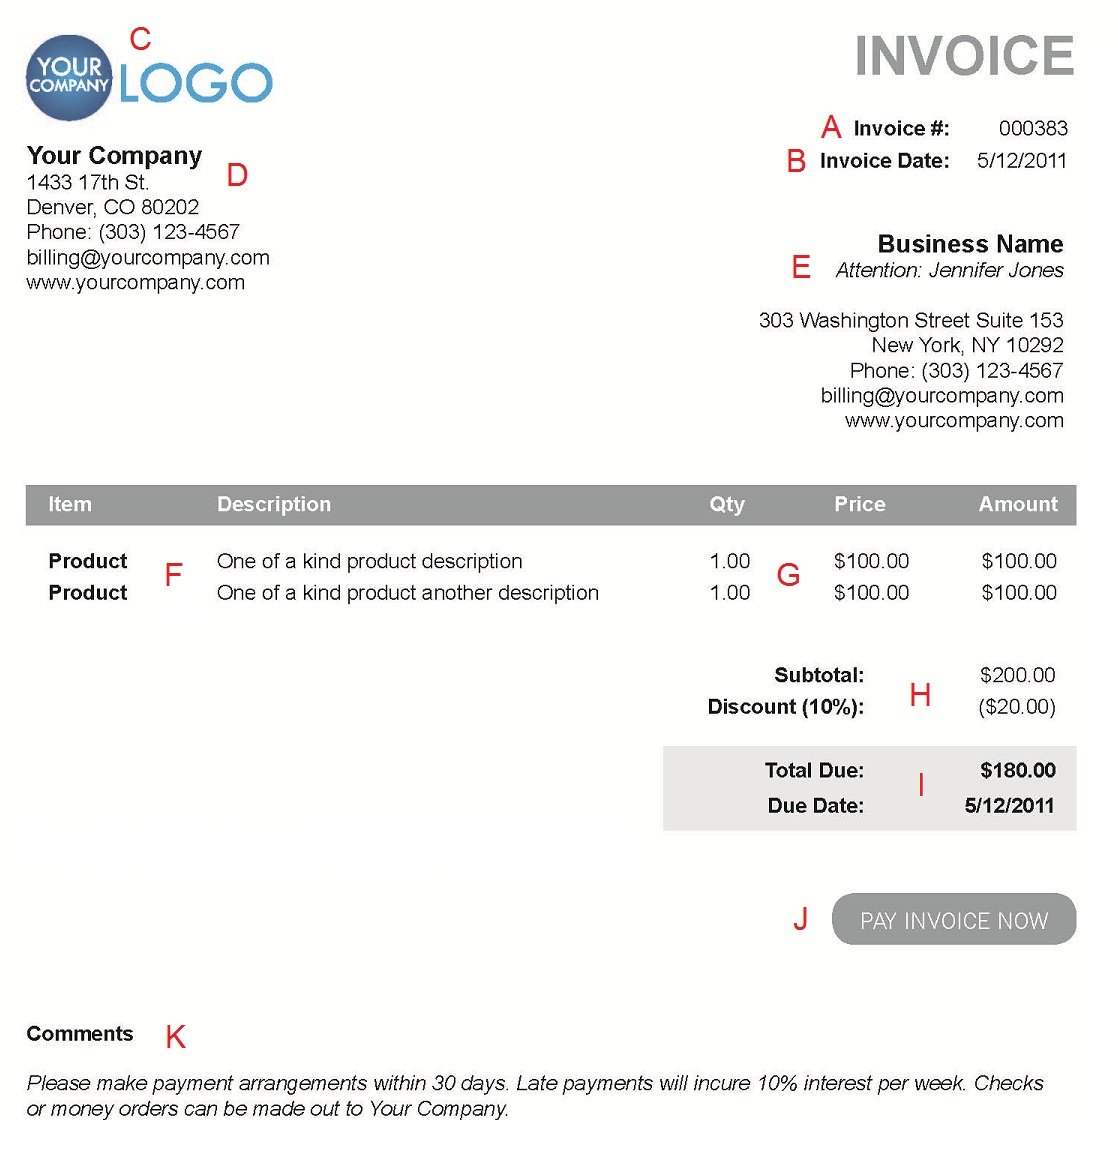 Ebitus  Prepossessing The  Different Sections Of An Electronic Payment Invoice With Licious A  With Delectable Payment Due Upon Receipt Invoice Also Payment Of Invoice In Addition Request An Invoice And I Invoice As Well As Xero Invoice Templates Download Additionally Personalised Invoice Books From Paysimplecom With Ebitus  Licious The  Different Sections Of An Electronic Payment Invoice With Delectable A  And Prepossessing Payment Due Upon Receipt Invoice Also Payment Of Invoice In Addition Request An Invoice From Paysimplecom